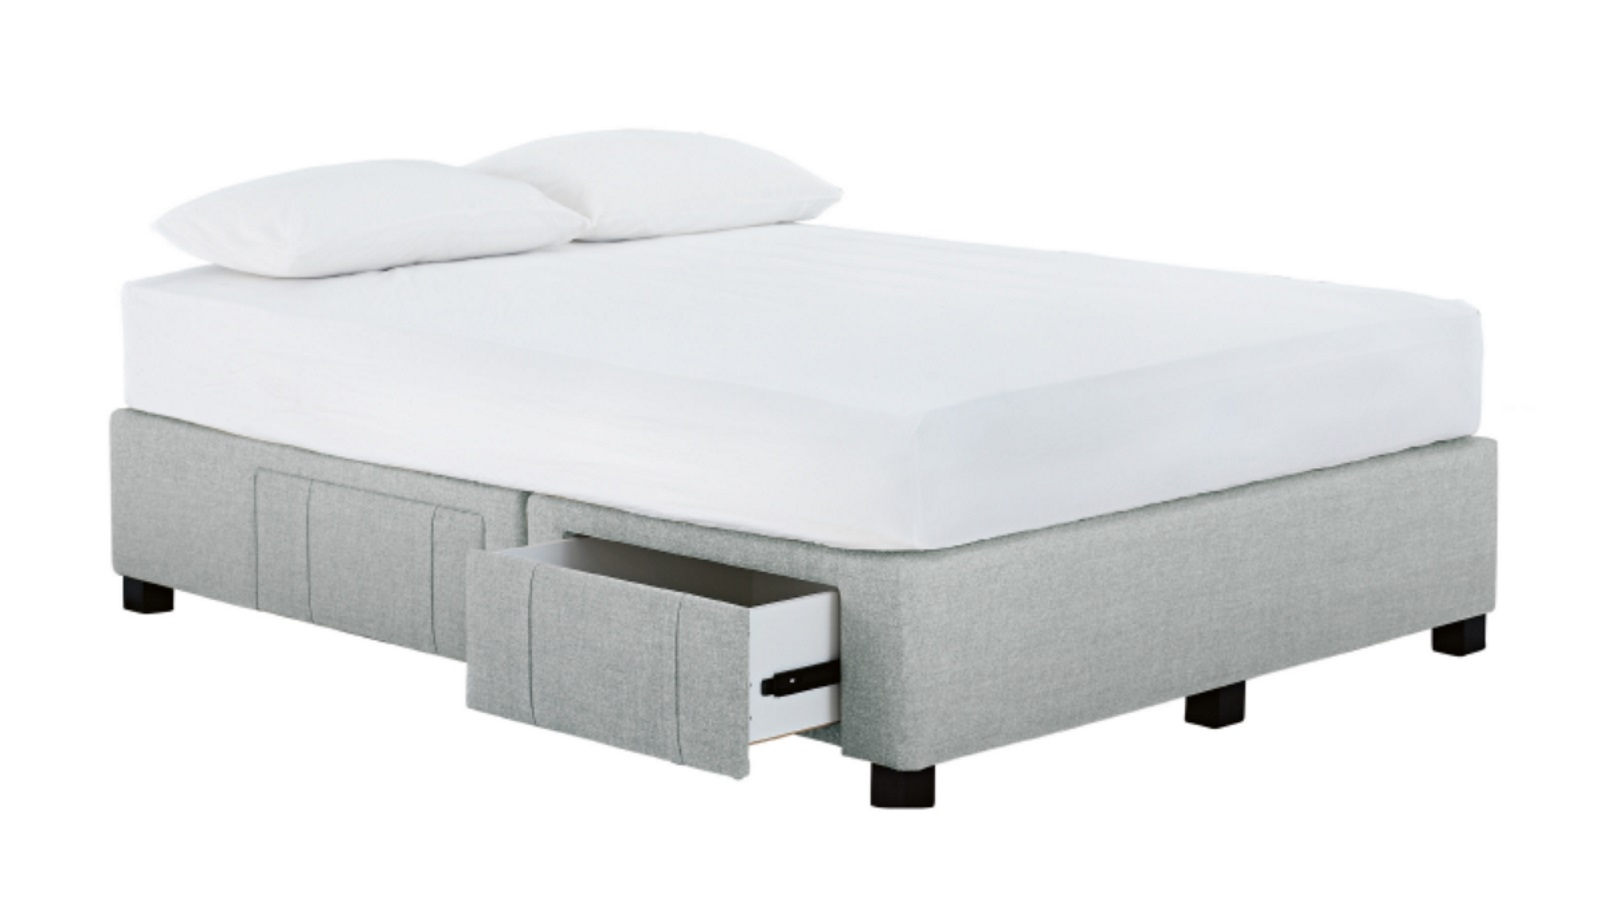 Bed Bases Melbourne Buy Jett 4 Drawer Queen Bed Base Harvey Norman Au